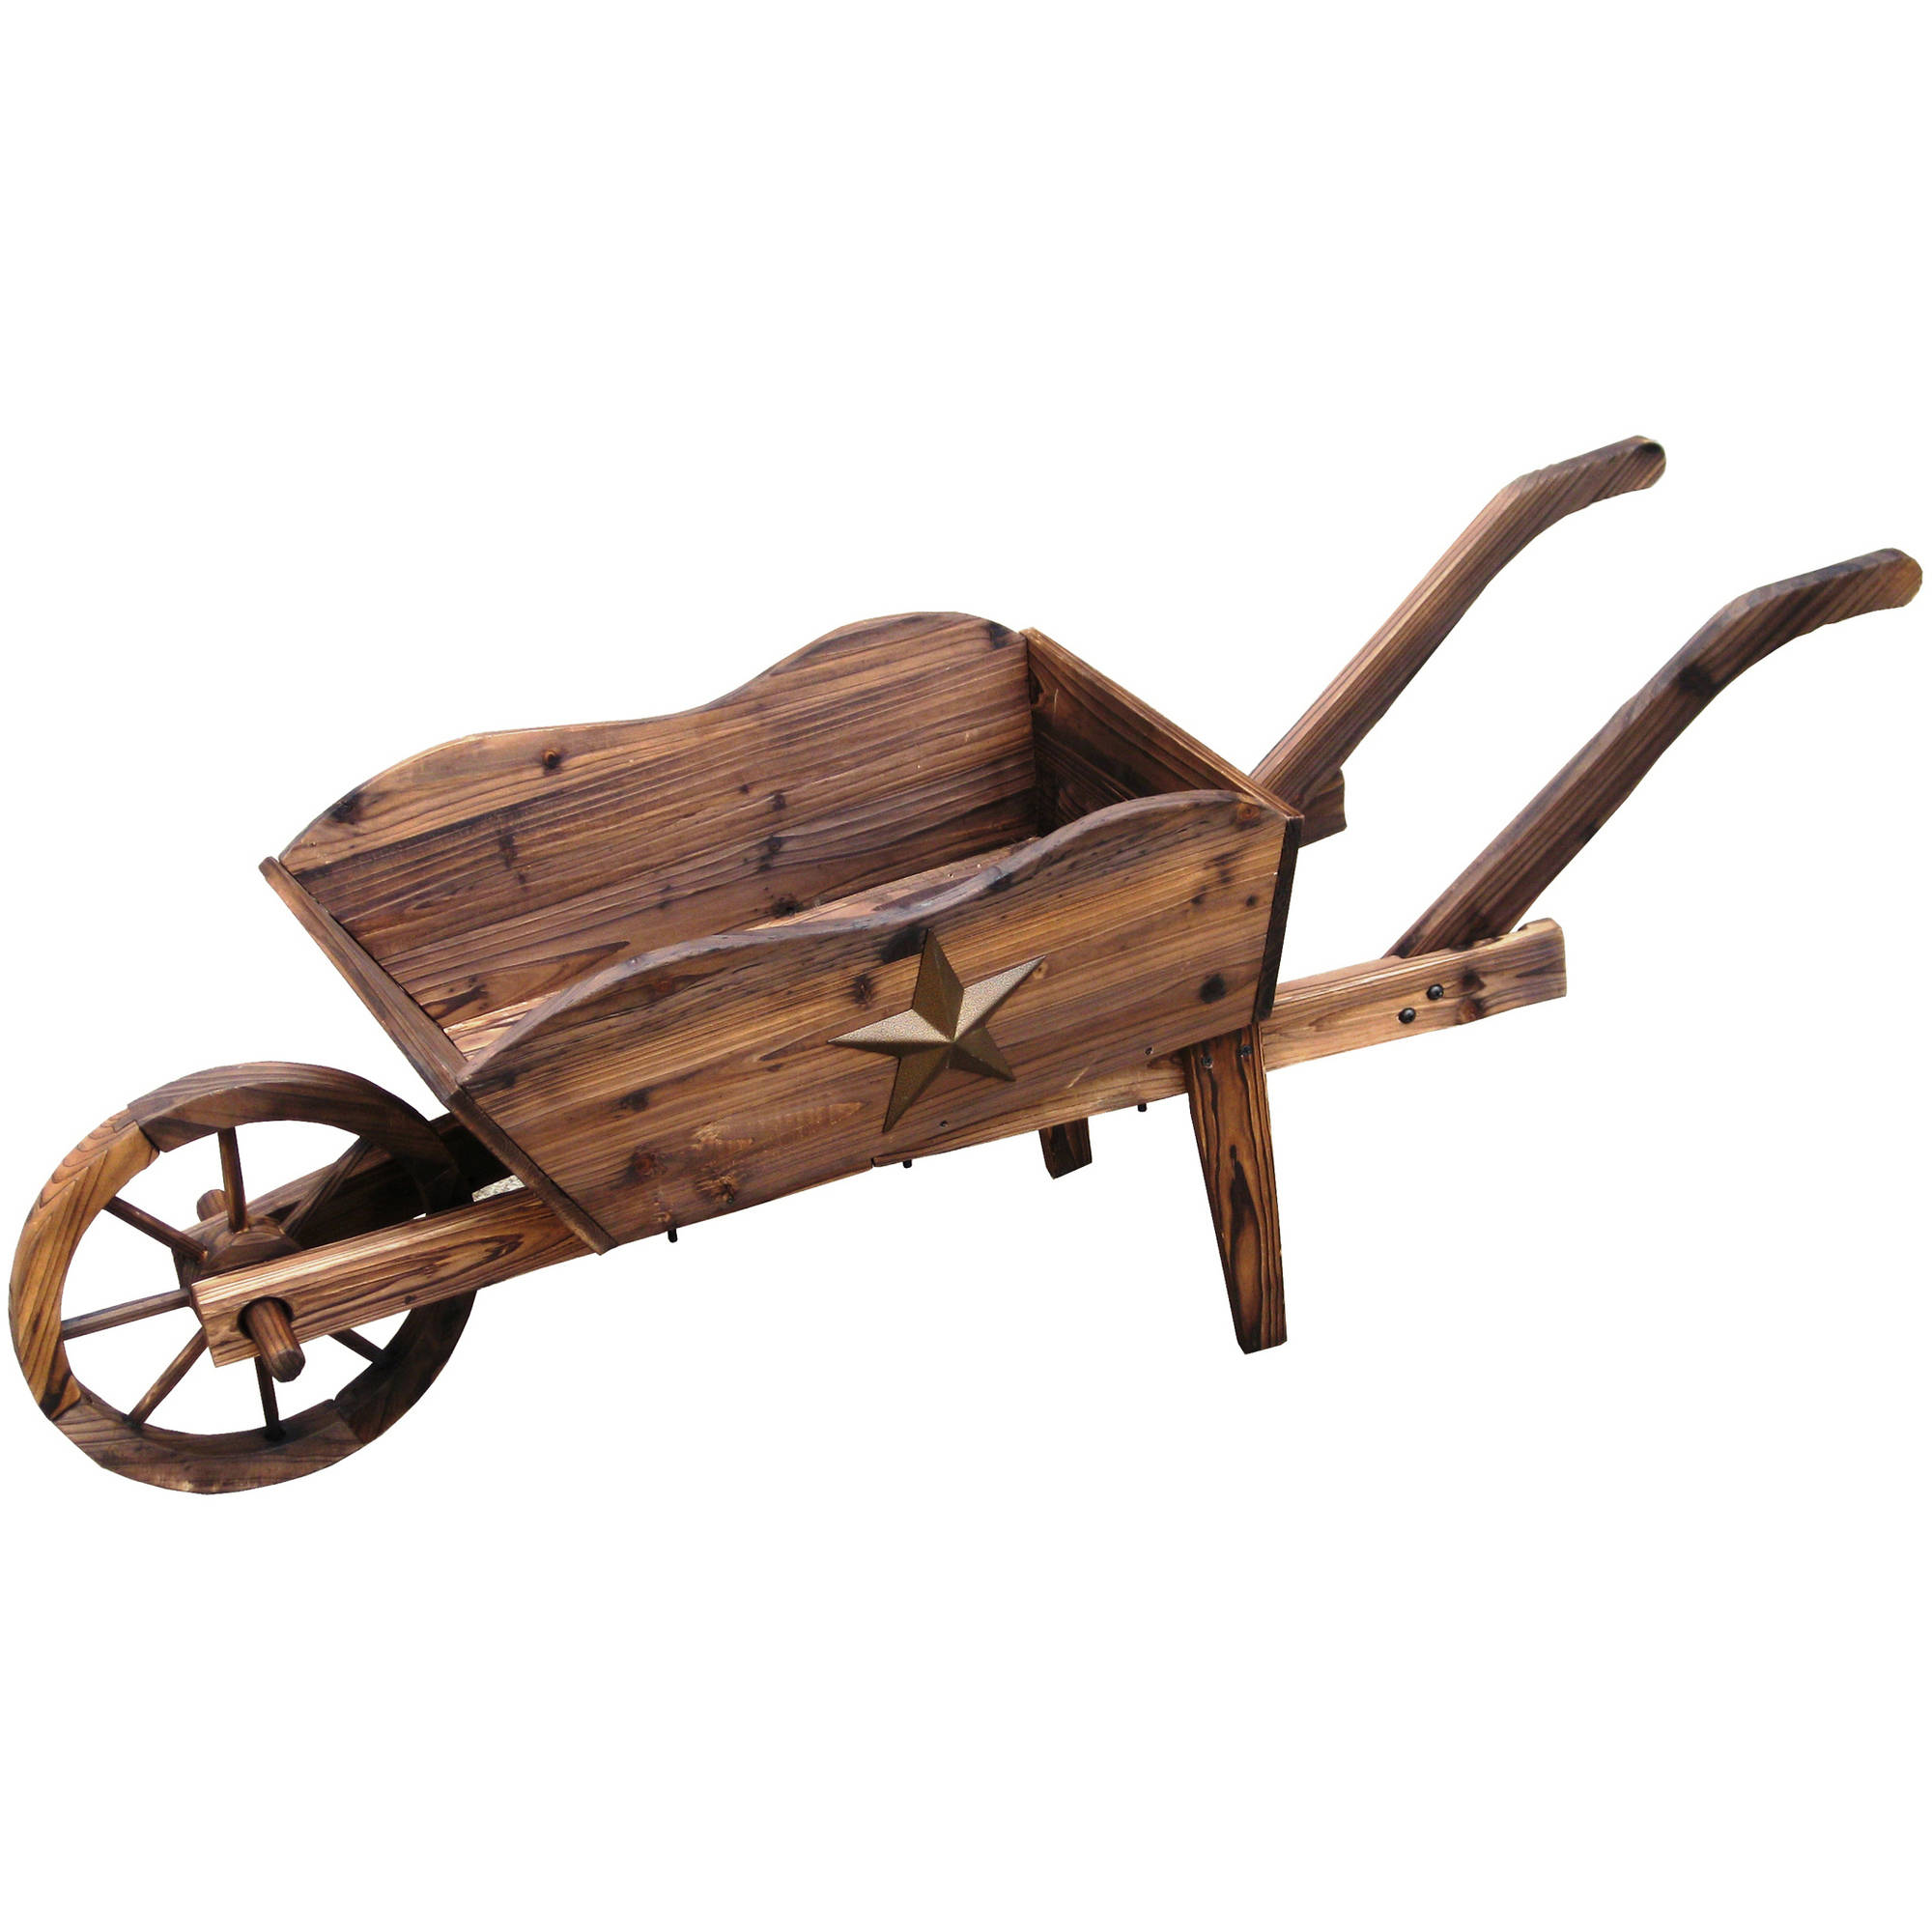 "Lehigh Country TX93959 24' L x 9""W x 16""H Wooden Wheel Barrow Planter"